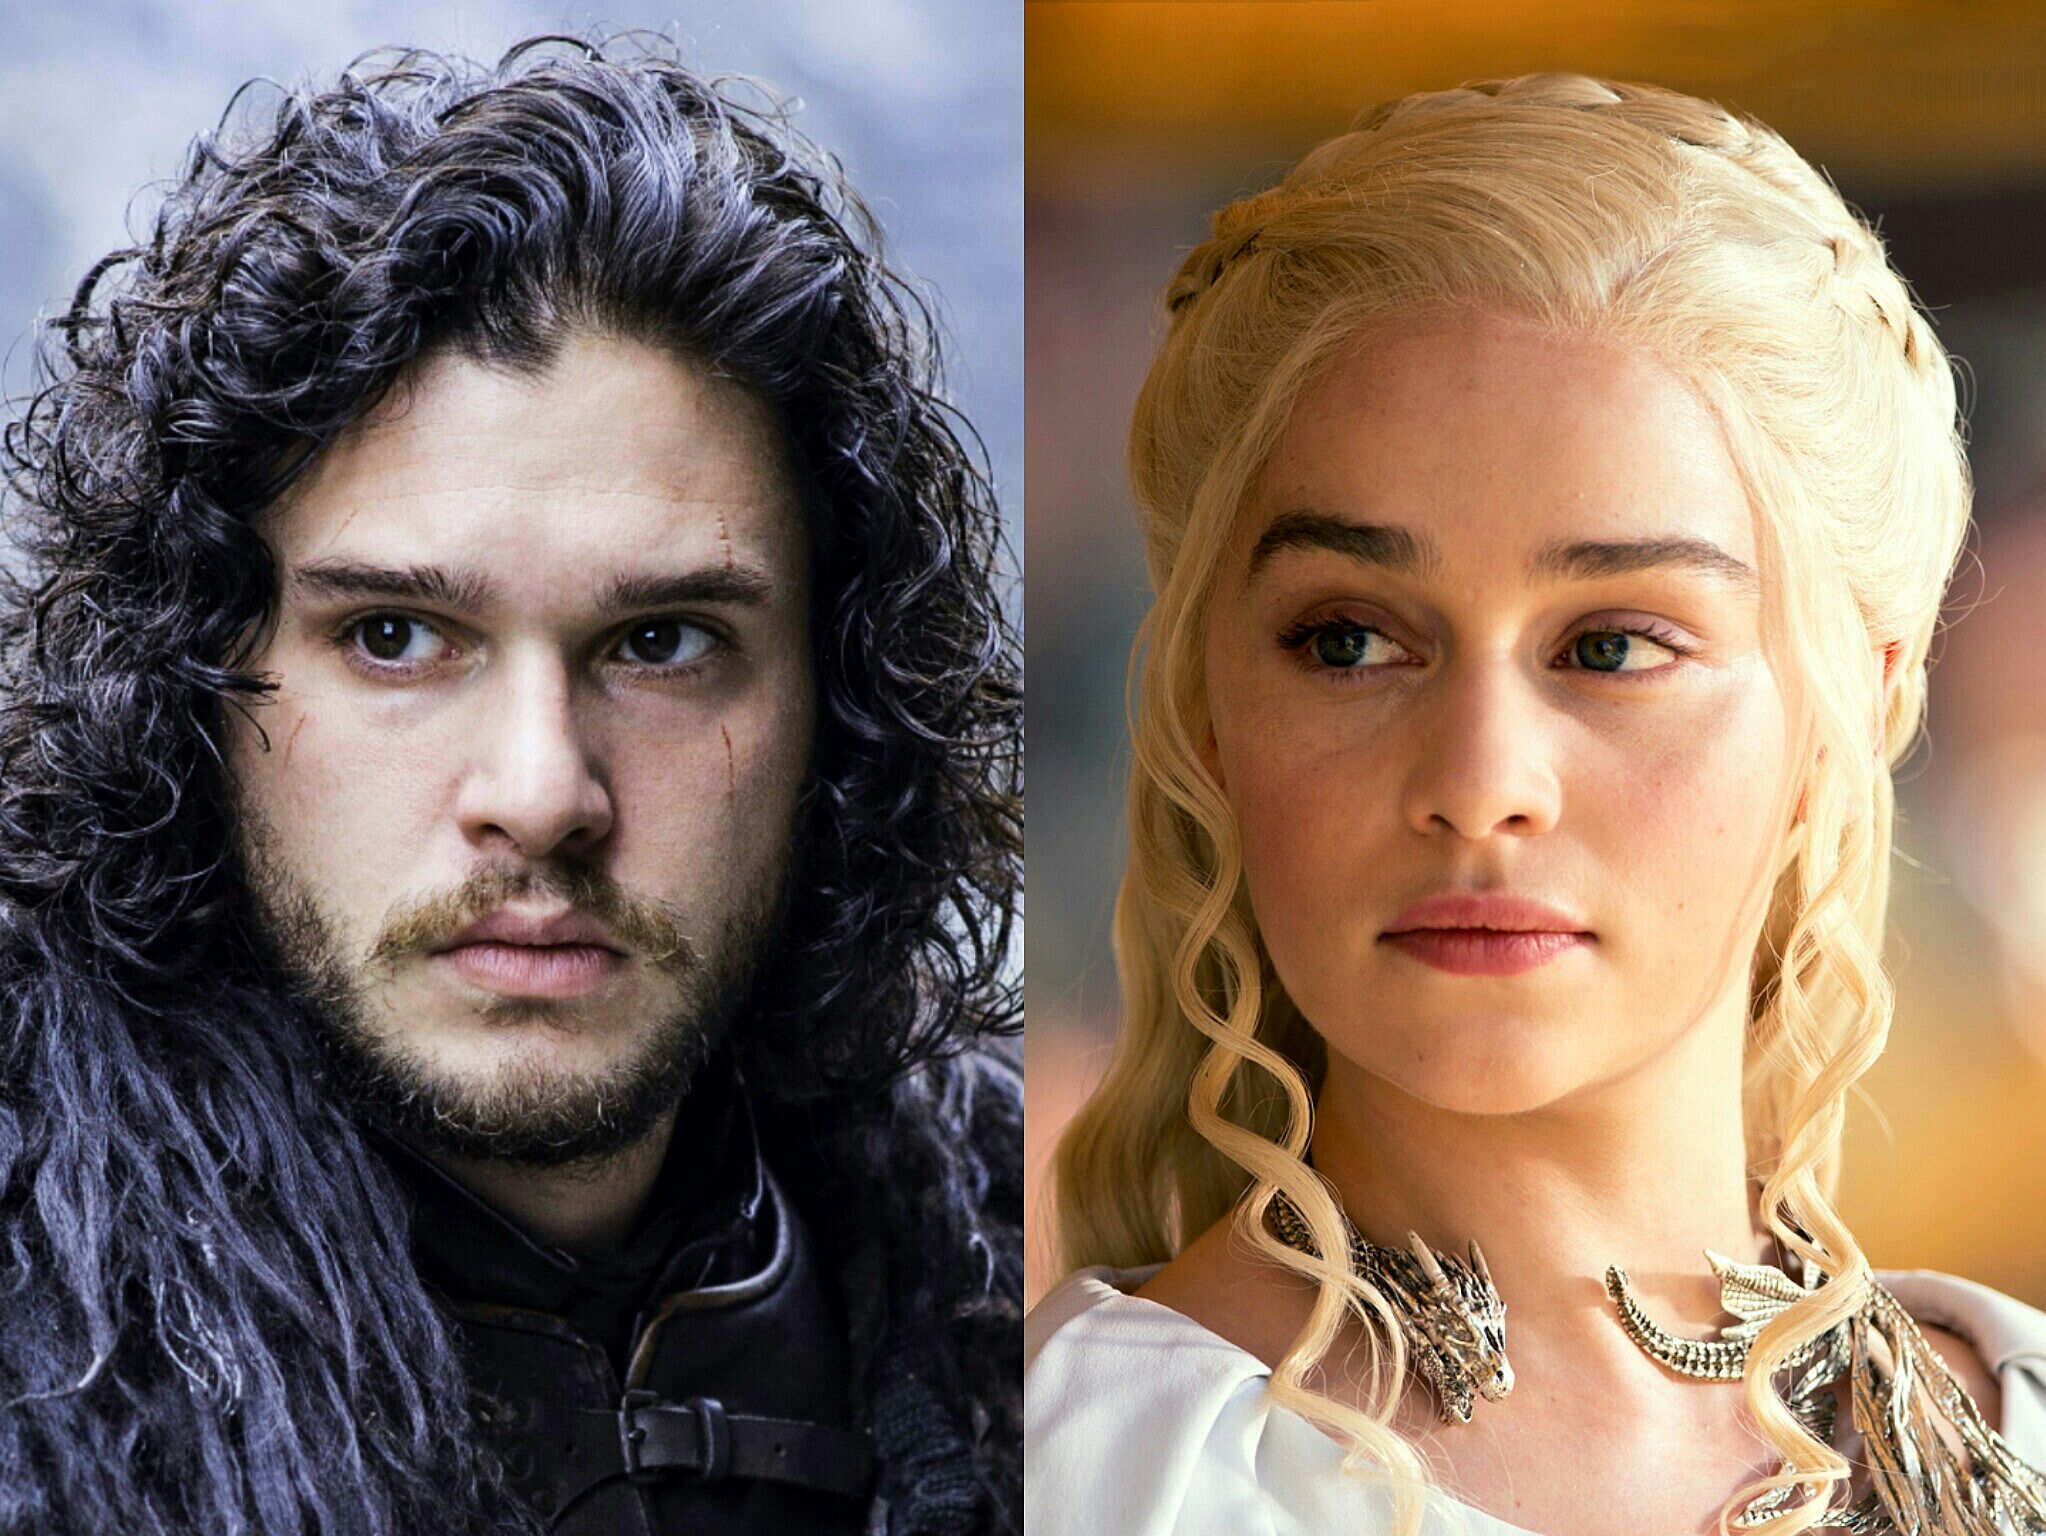 Game of Thrones: Jon Snow and Daenerys - How Likely is It?